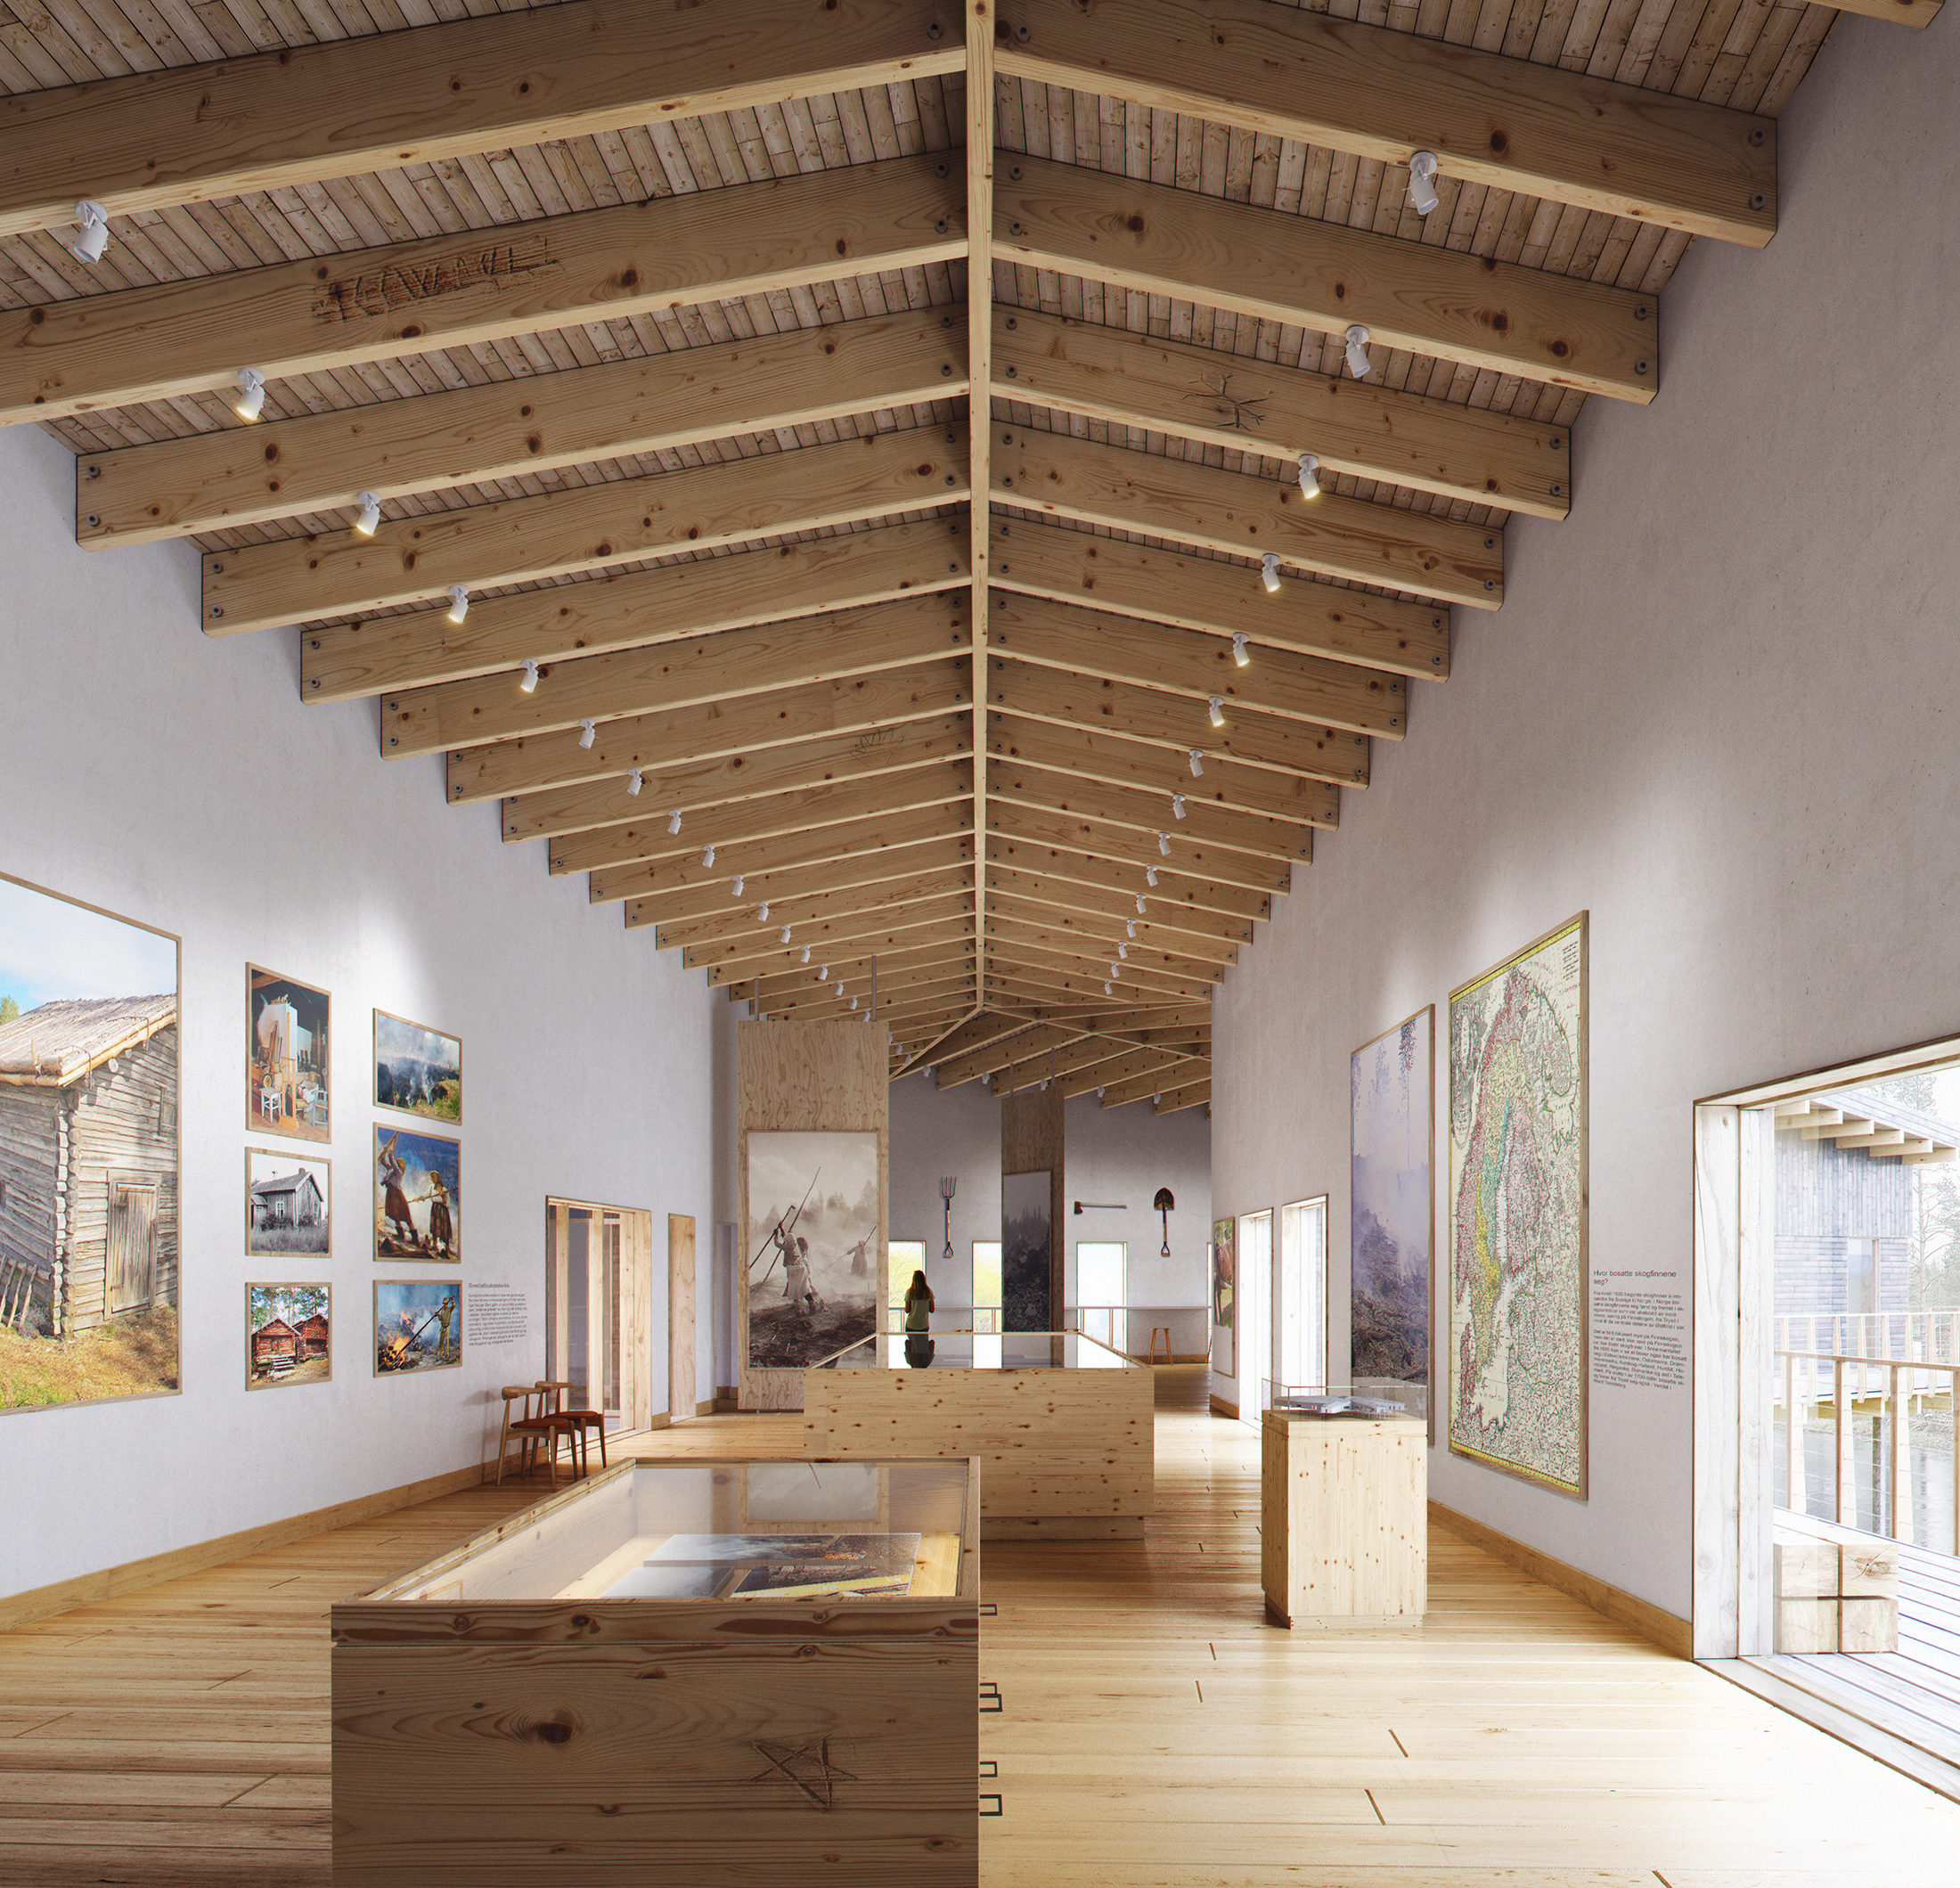 Simsand Architects, Skogfinsk Museum, Norway, 2018